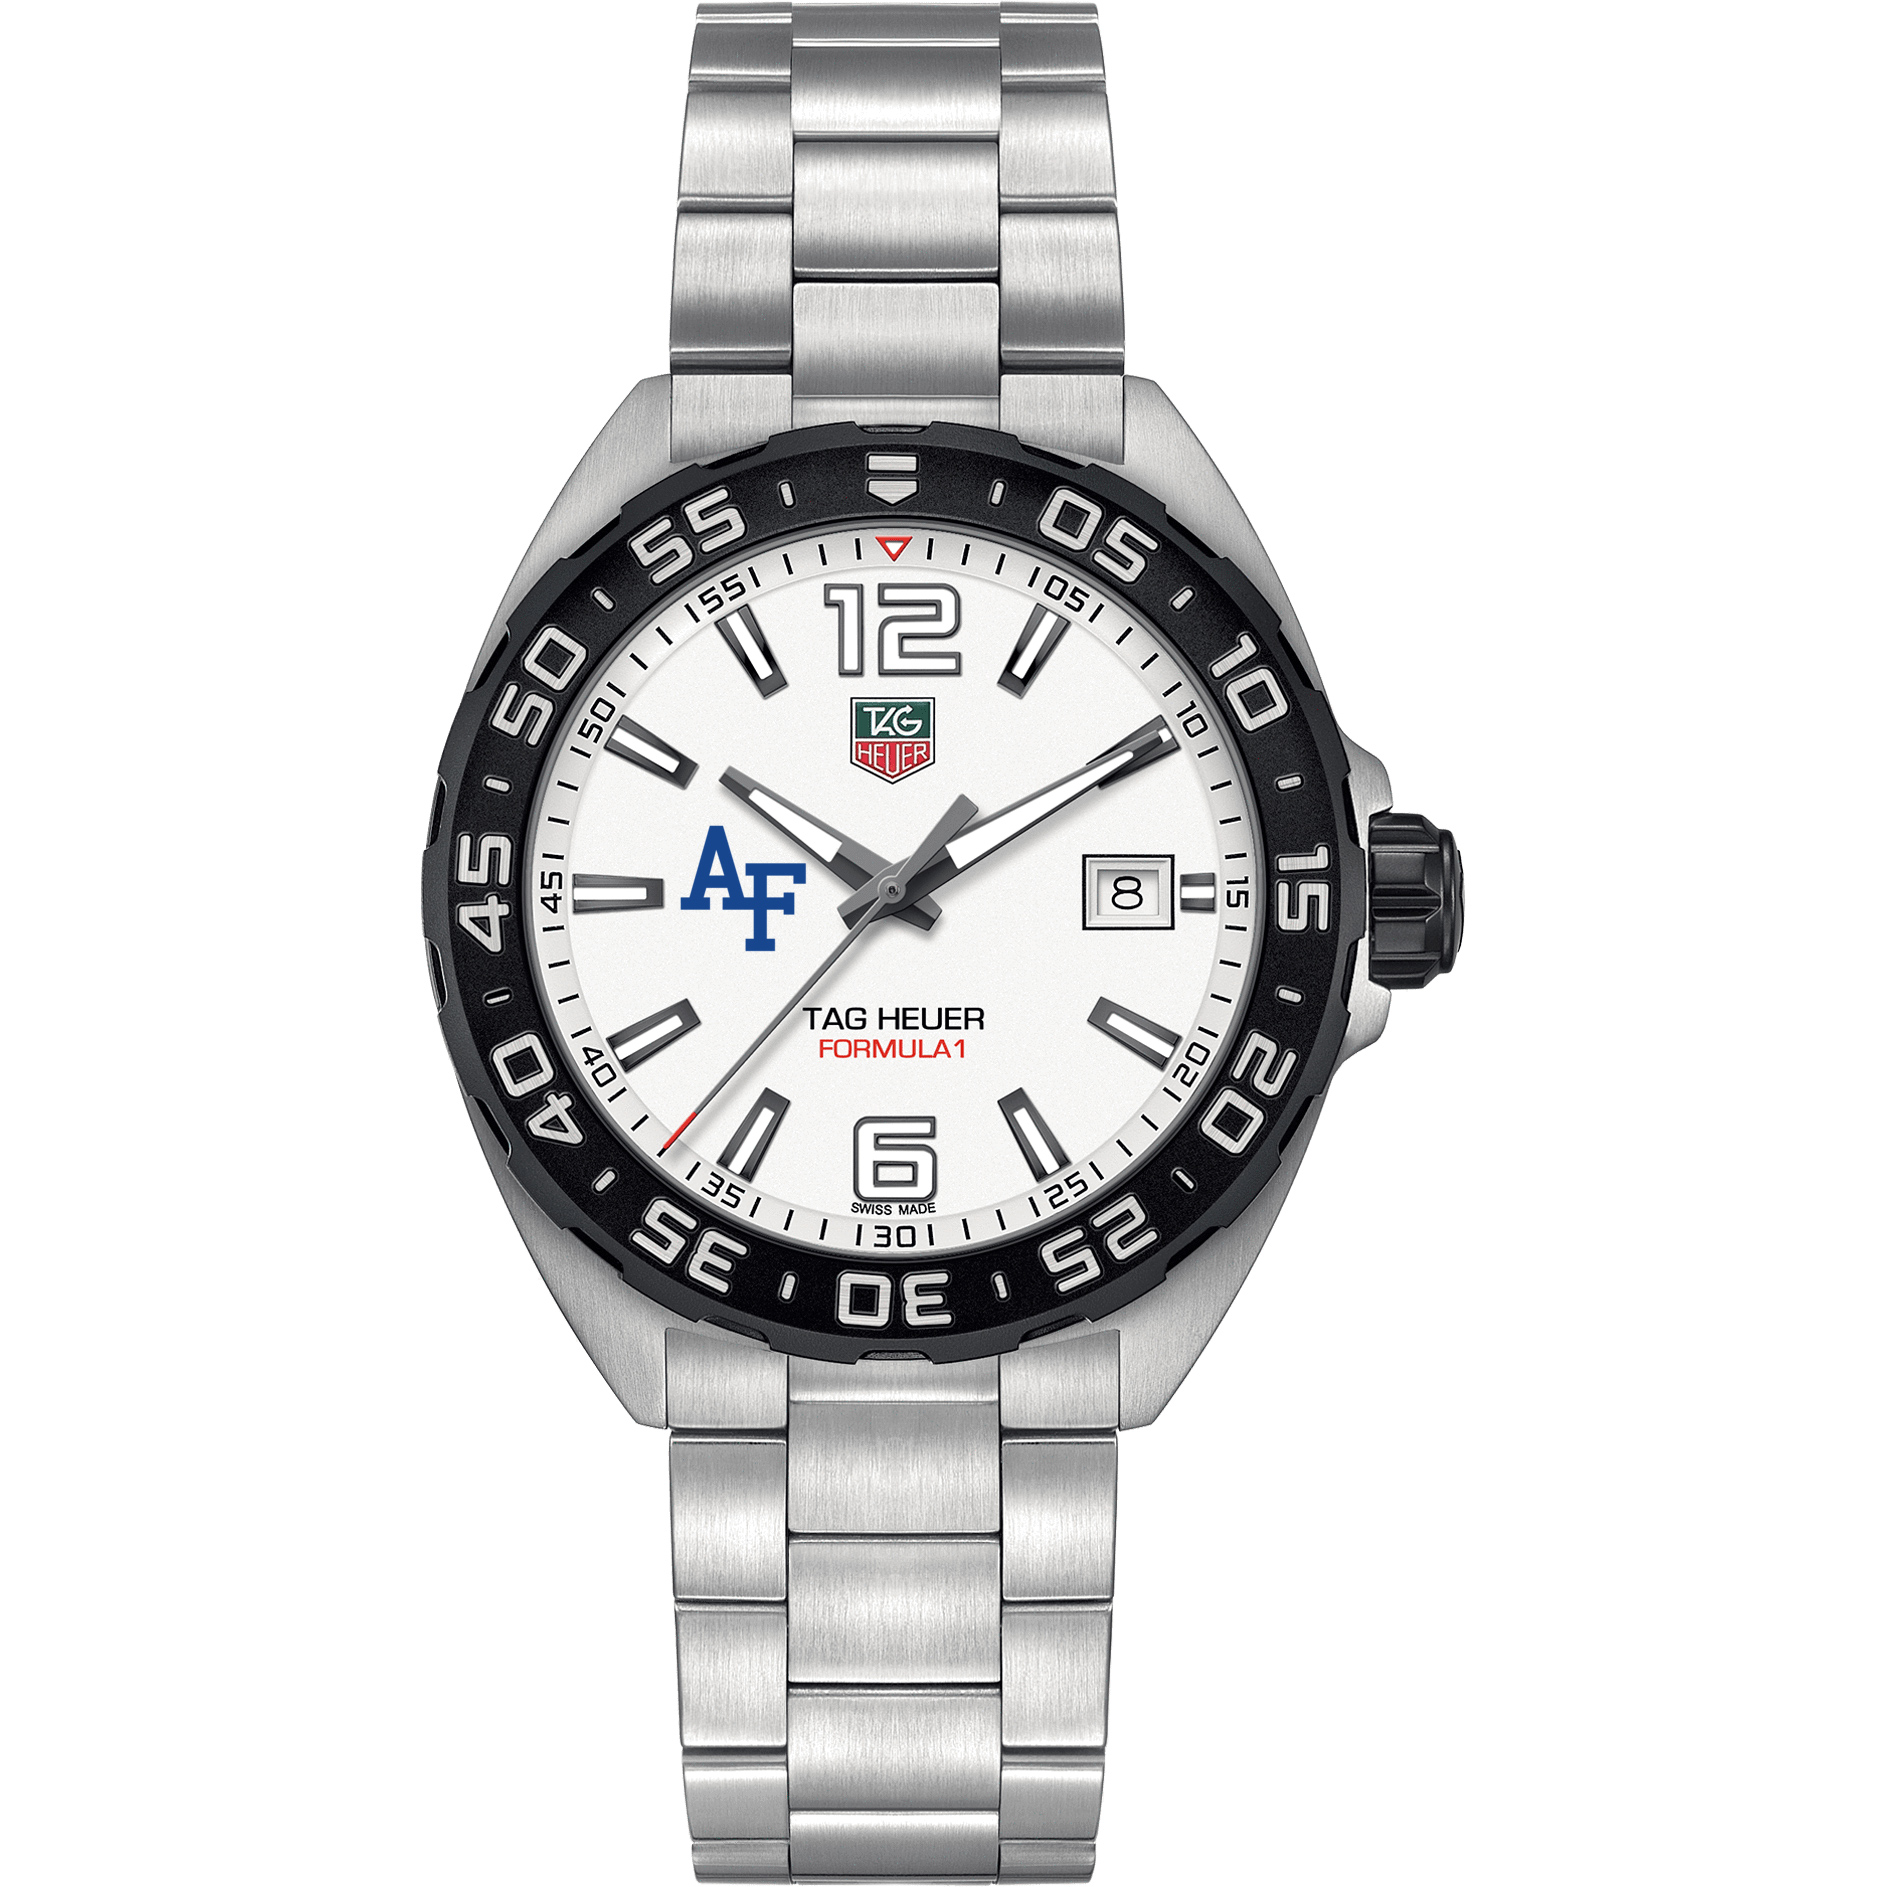 Air Force Academy Men's TAG Heuer Formula 1 - Image 2